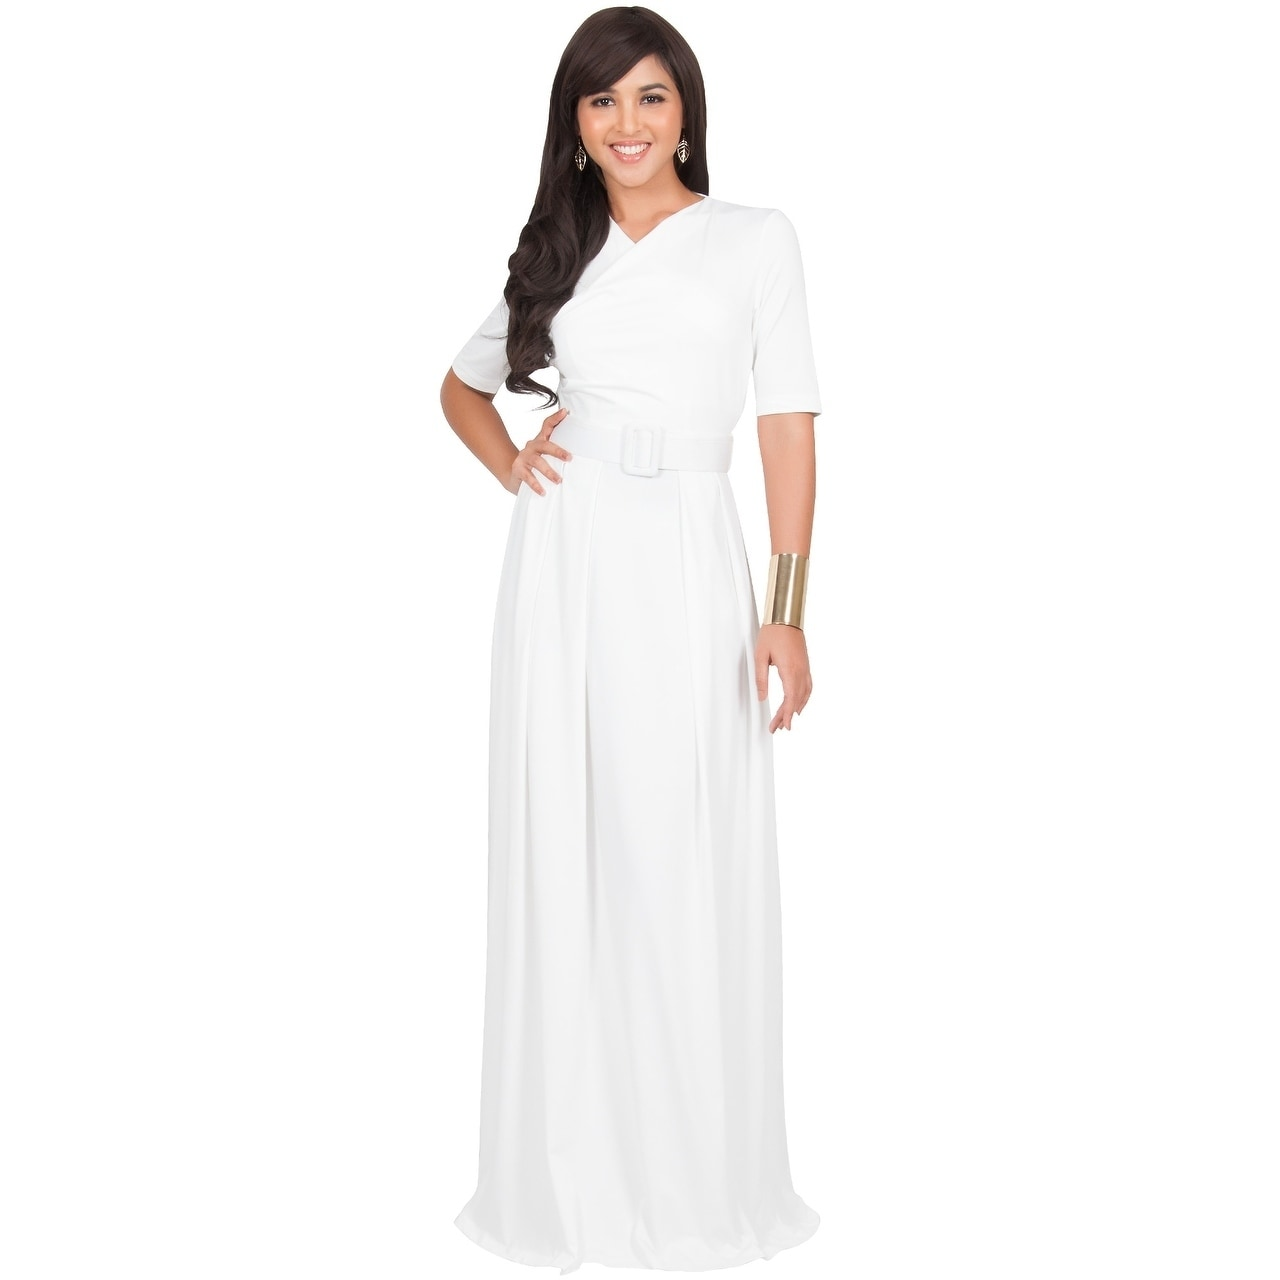 21fe92b71344b Shop KOH KOH Womens Half-Sleeve Elegant Maxi Dress - Free Shipping ...